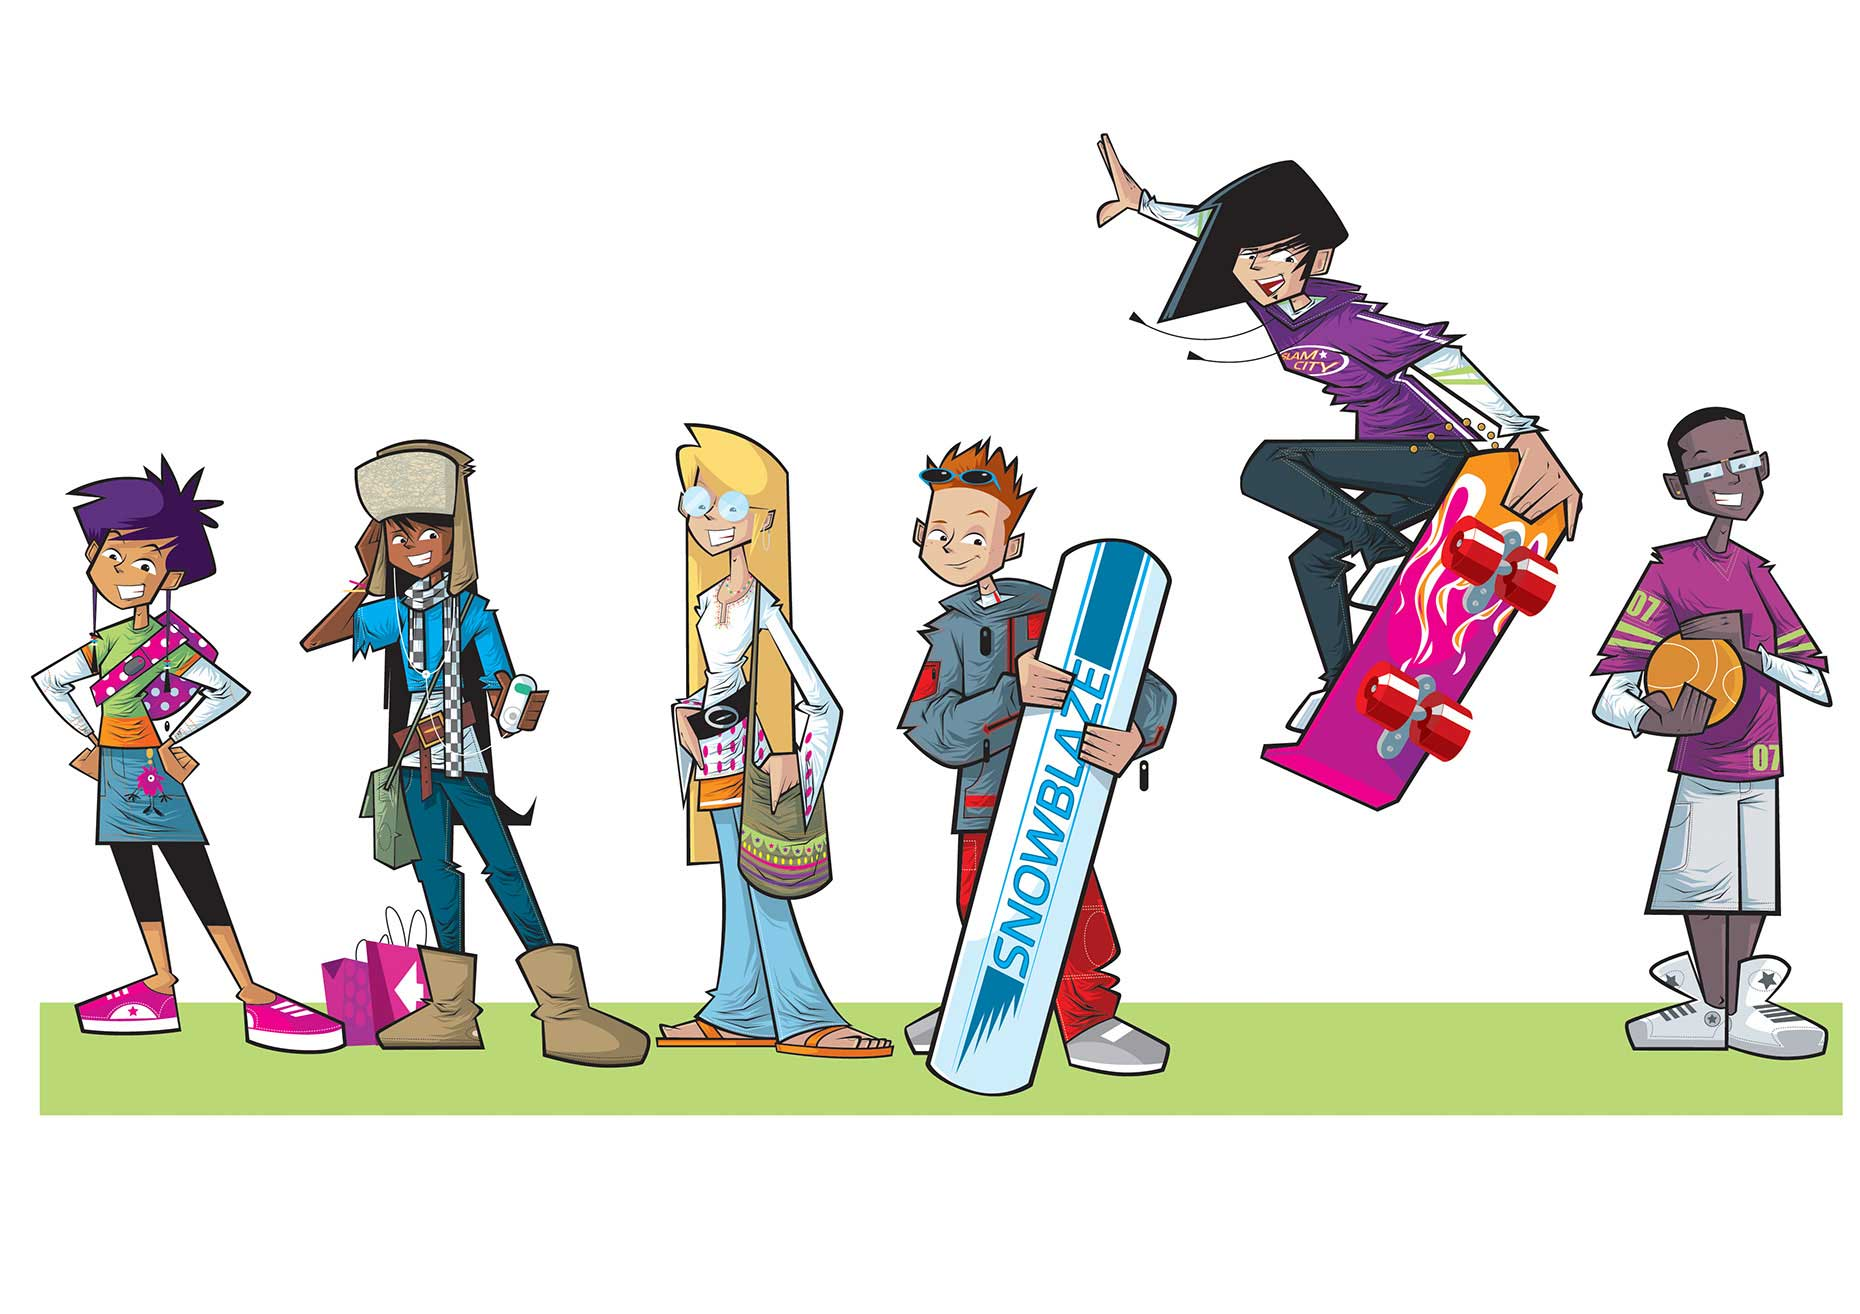 People_Vector-Teenagers-Style-Snowboarder_Skateboarder-and-Basketball_player